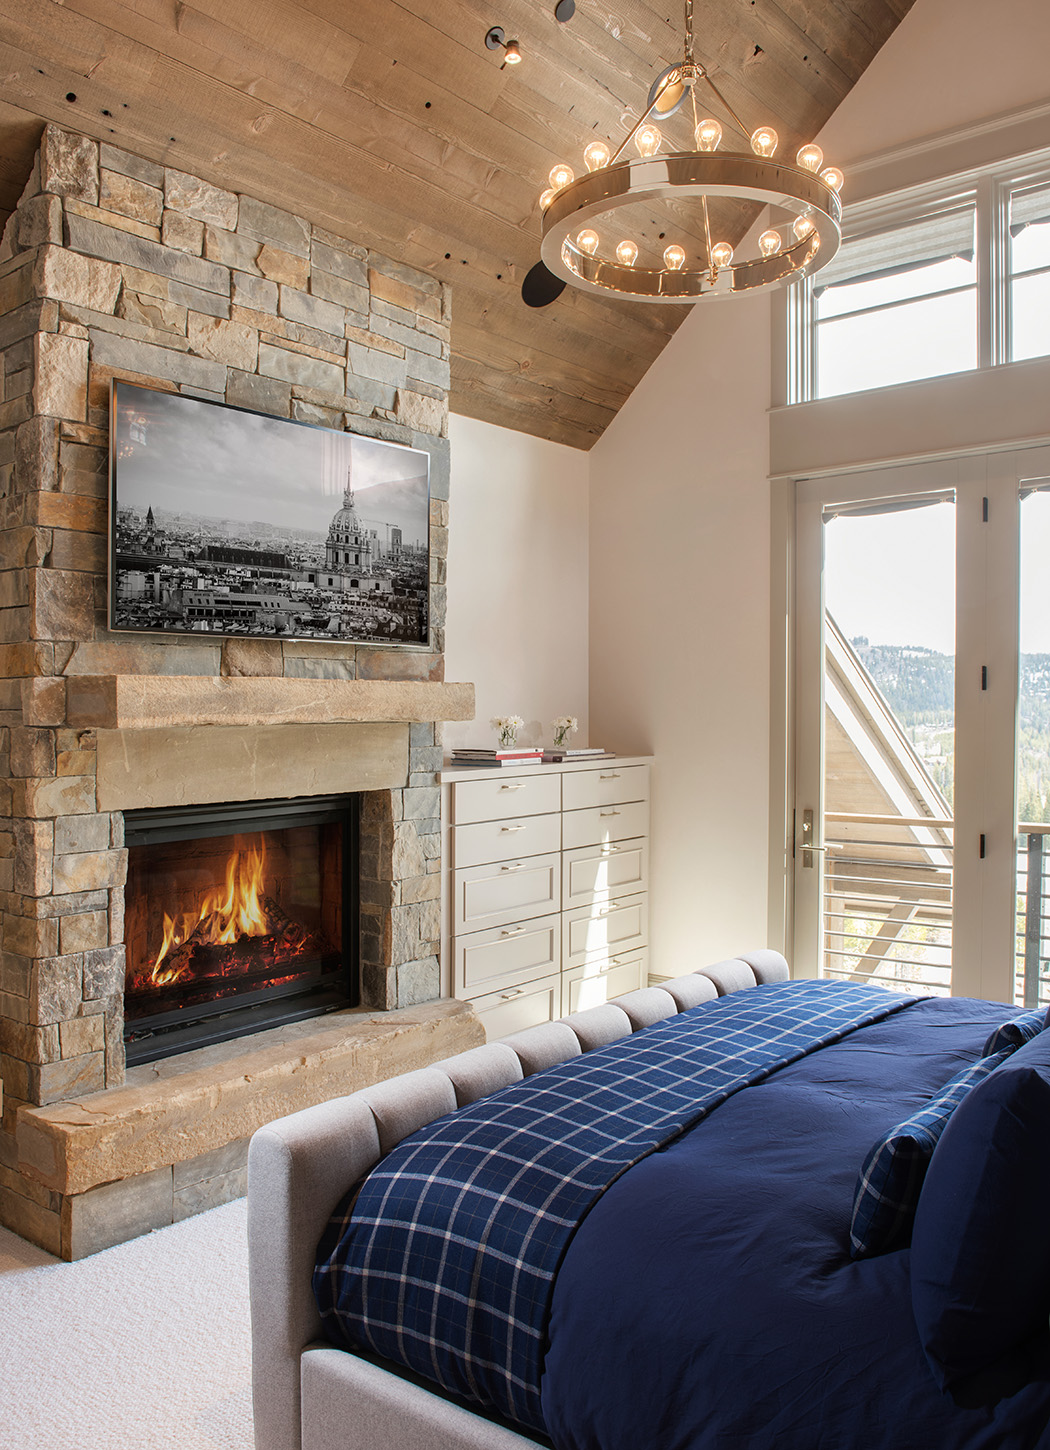 I love the cozy bedrooms.  The floor-to-ceiling fireplace adds that touch of warmth!